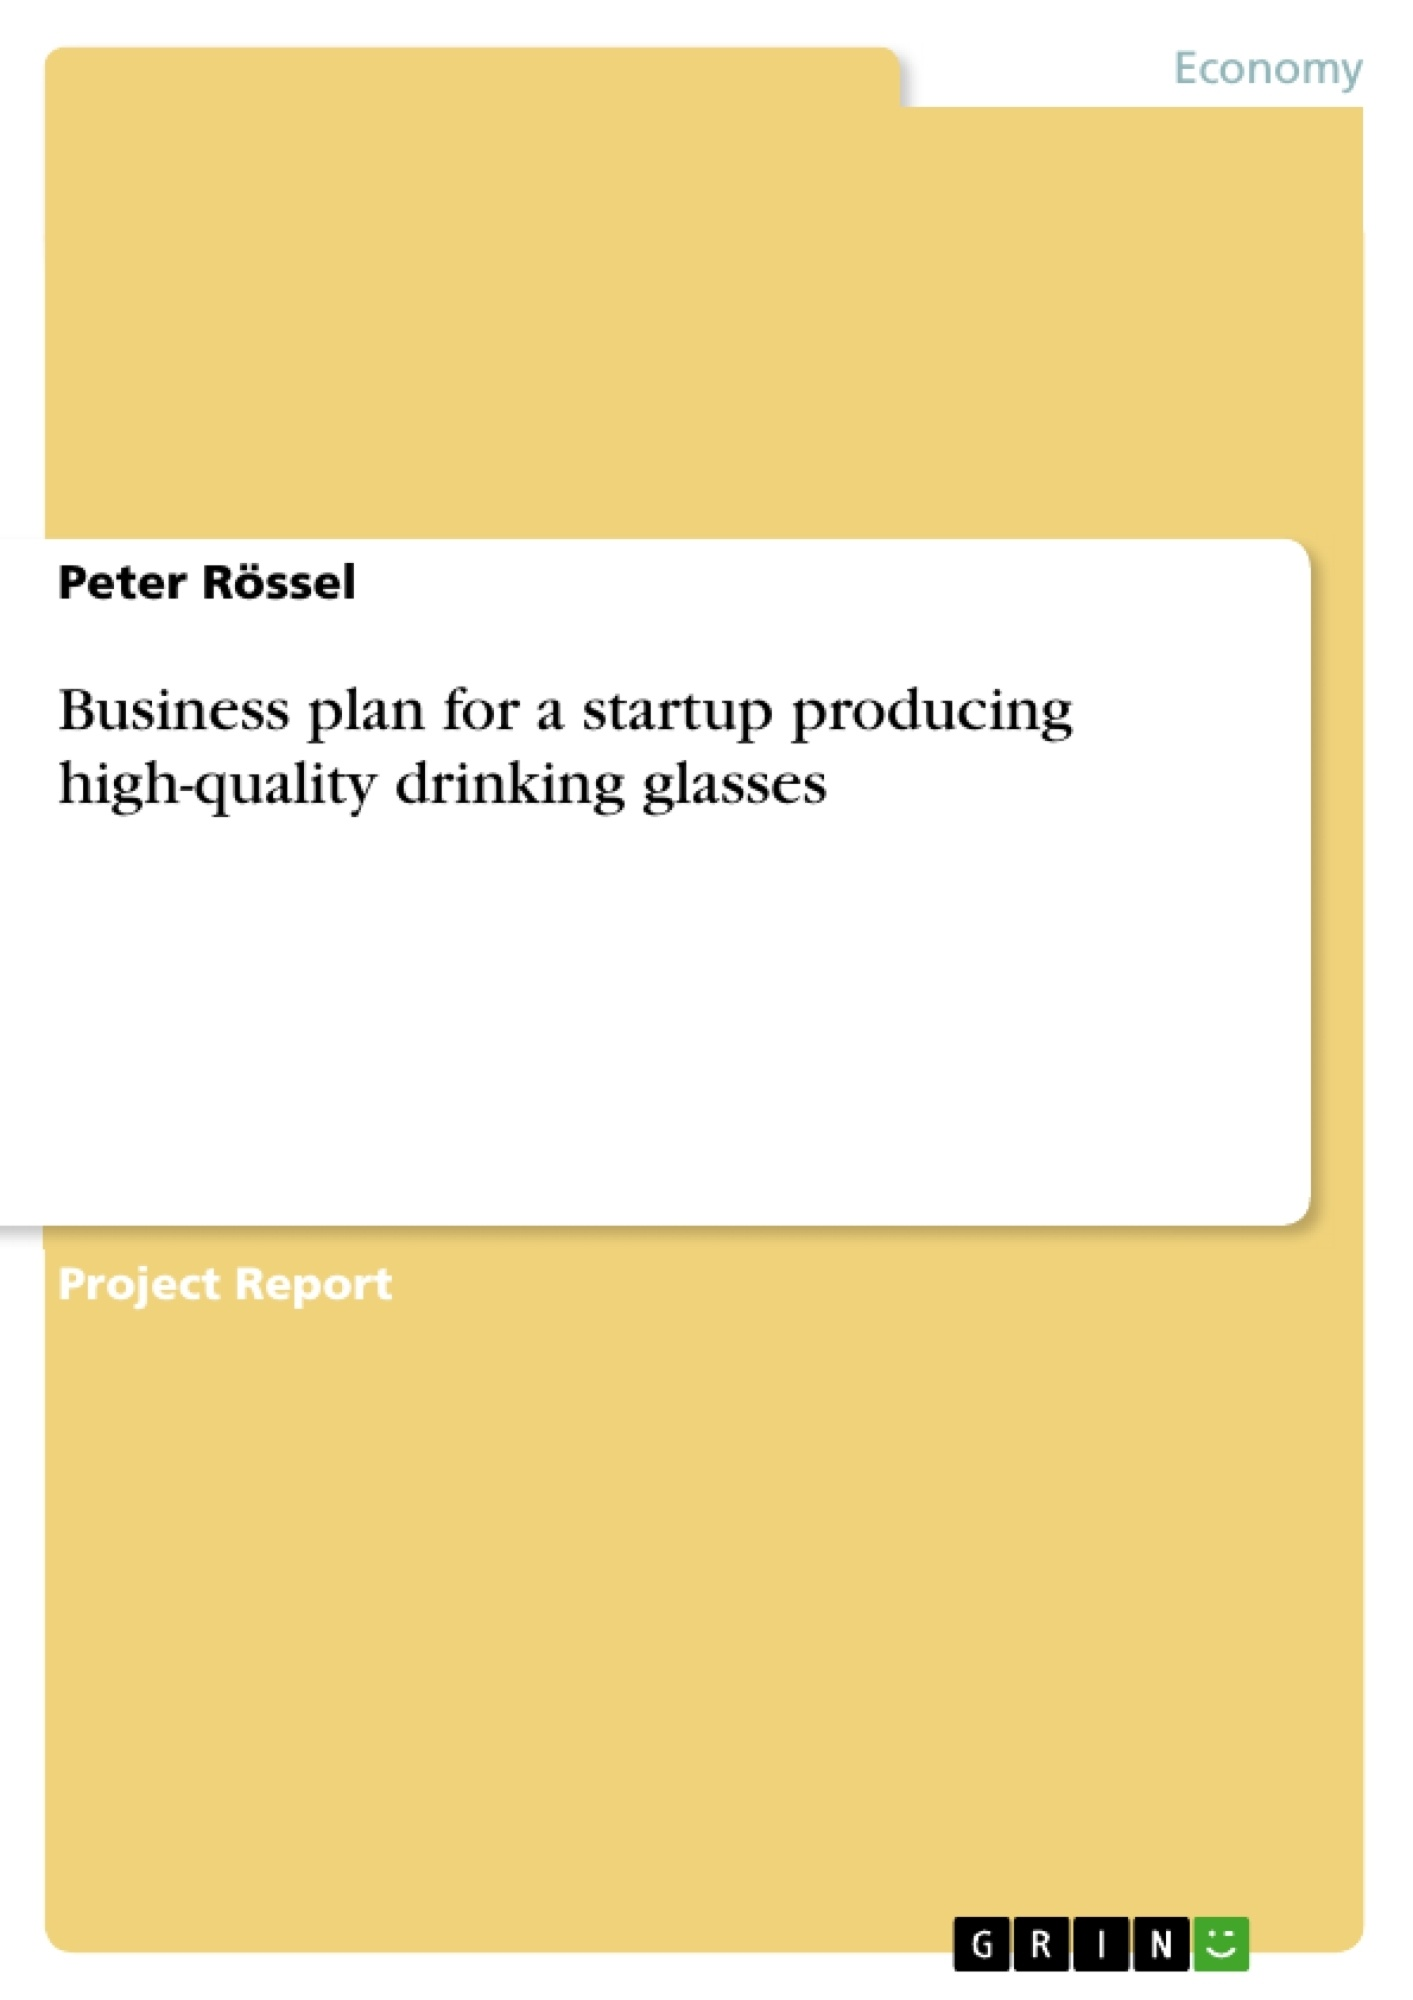 Title: Business plan for a startup producing high-quality drinking glasses